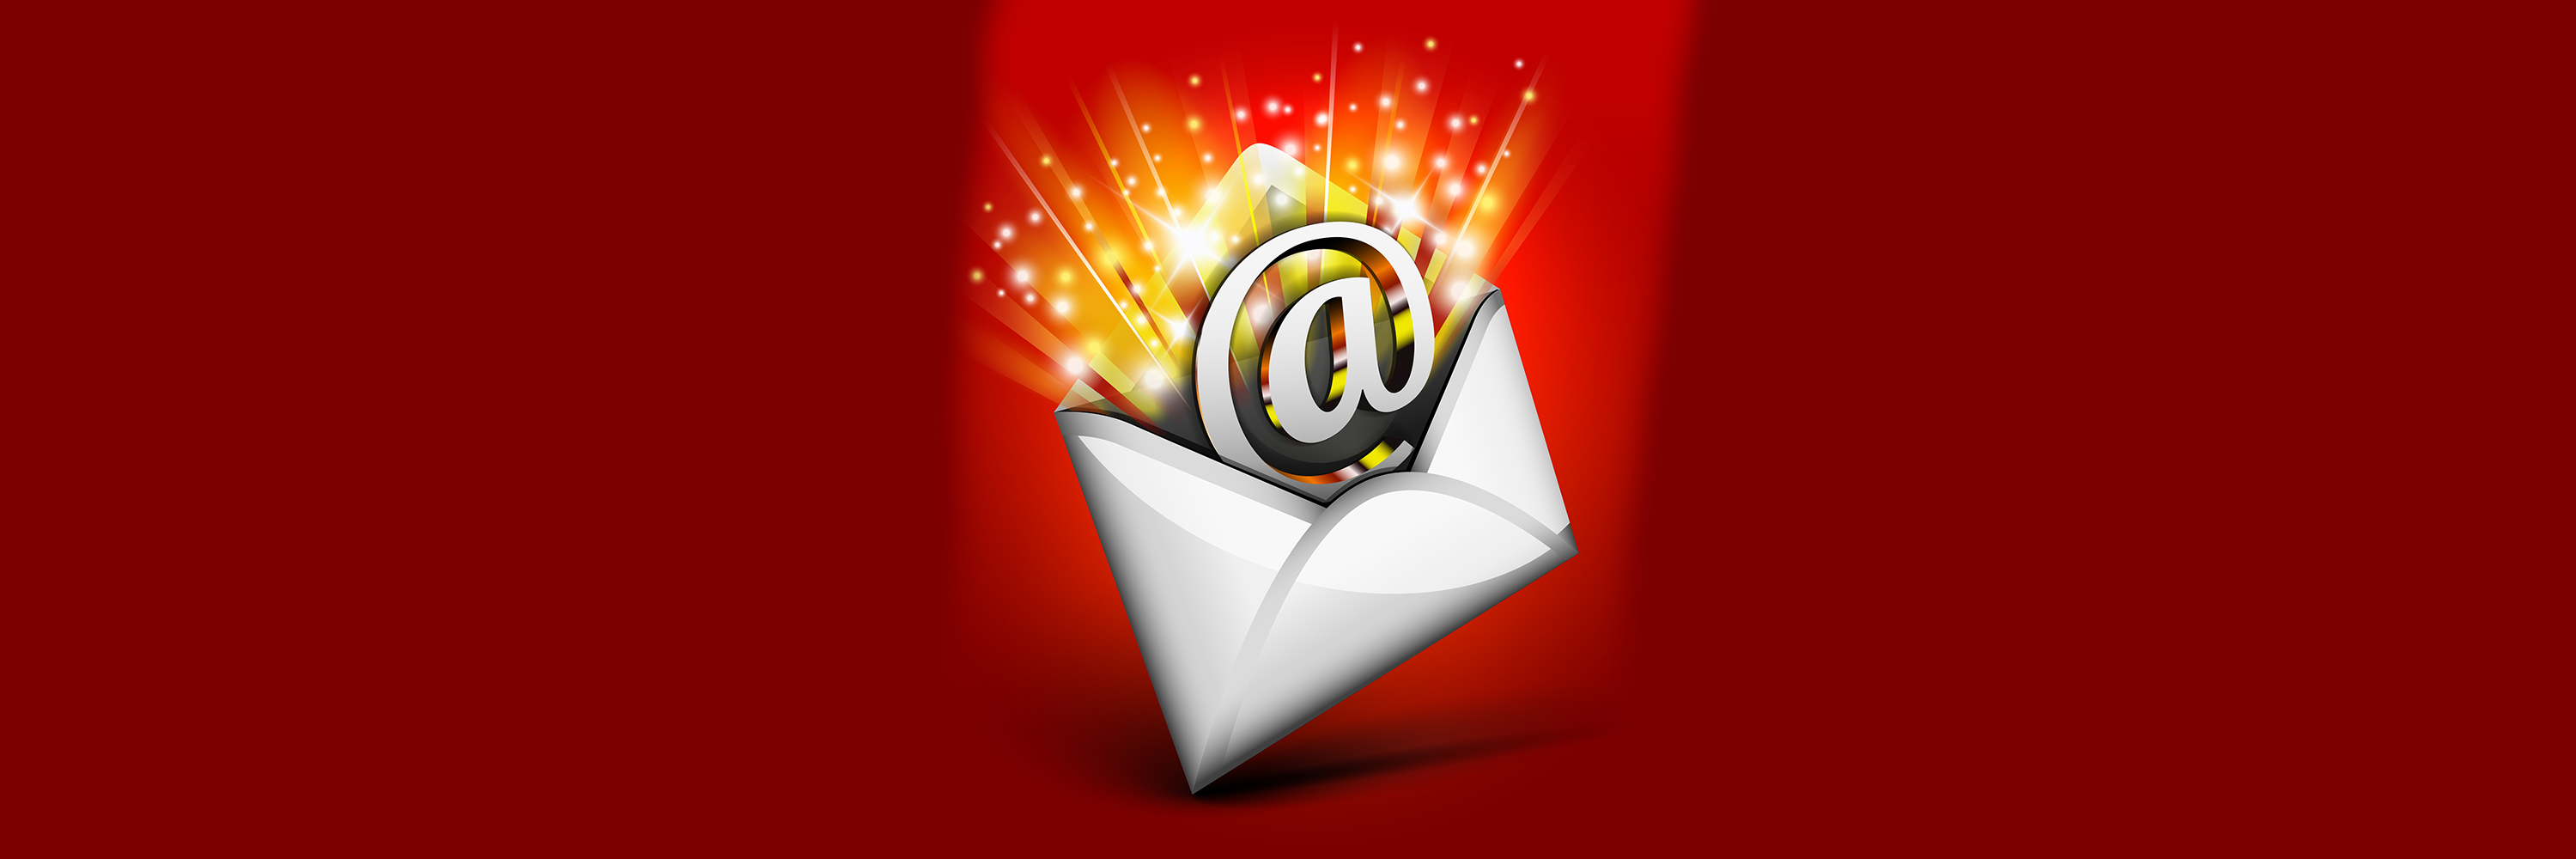 How to spot a phishing scam e-mail